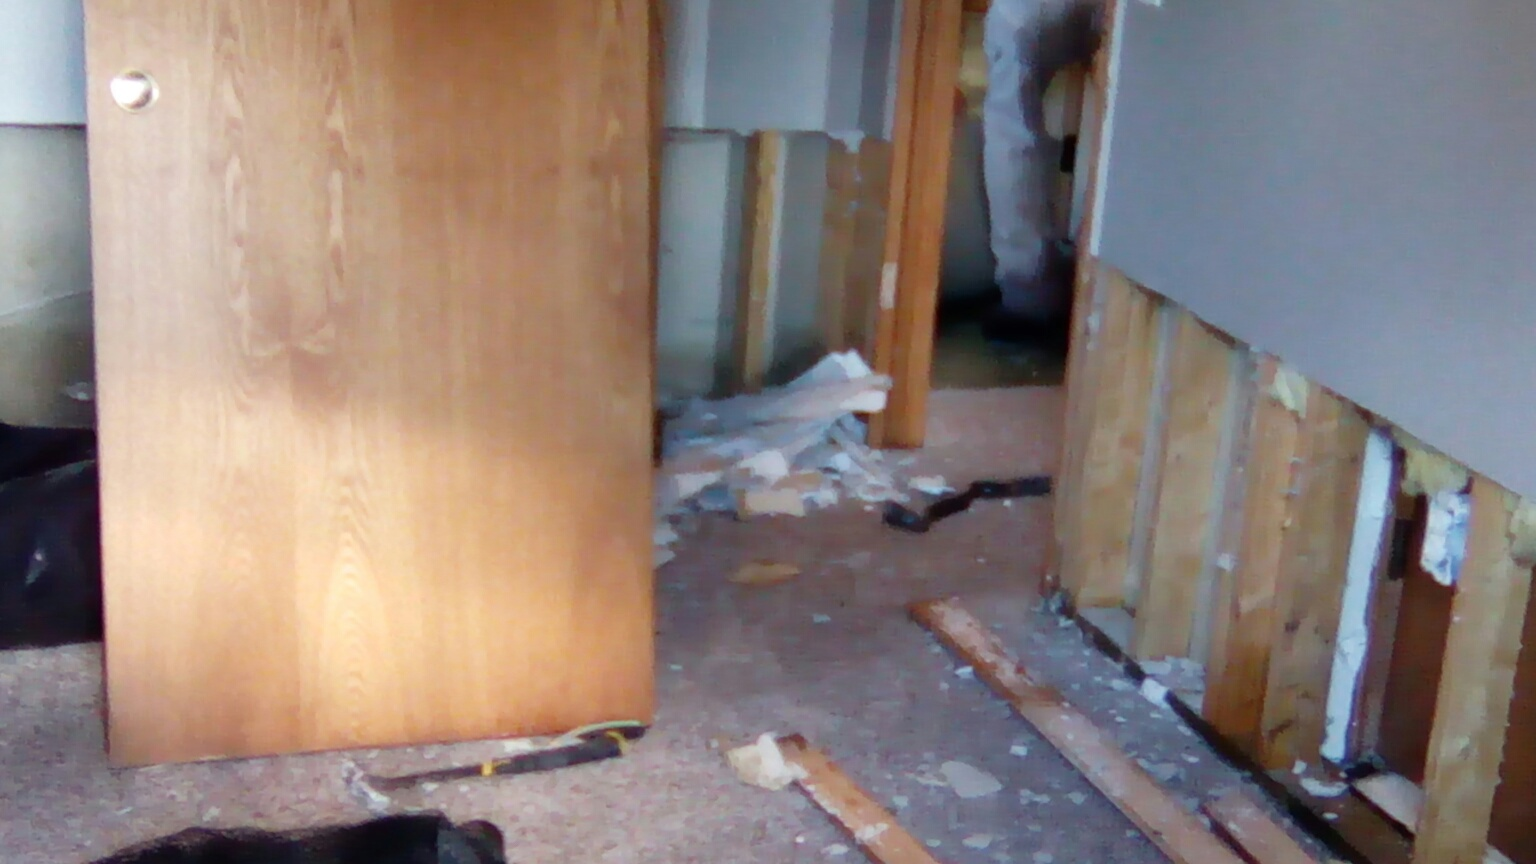 The drywall, carpet, furniture and more all need to be replaced